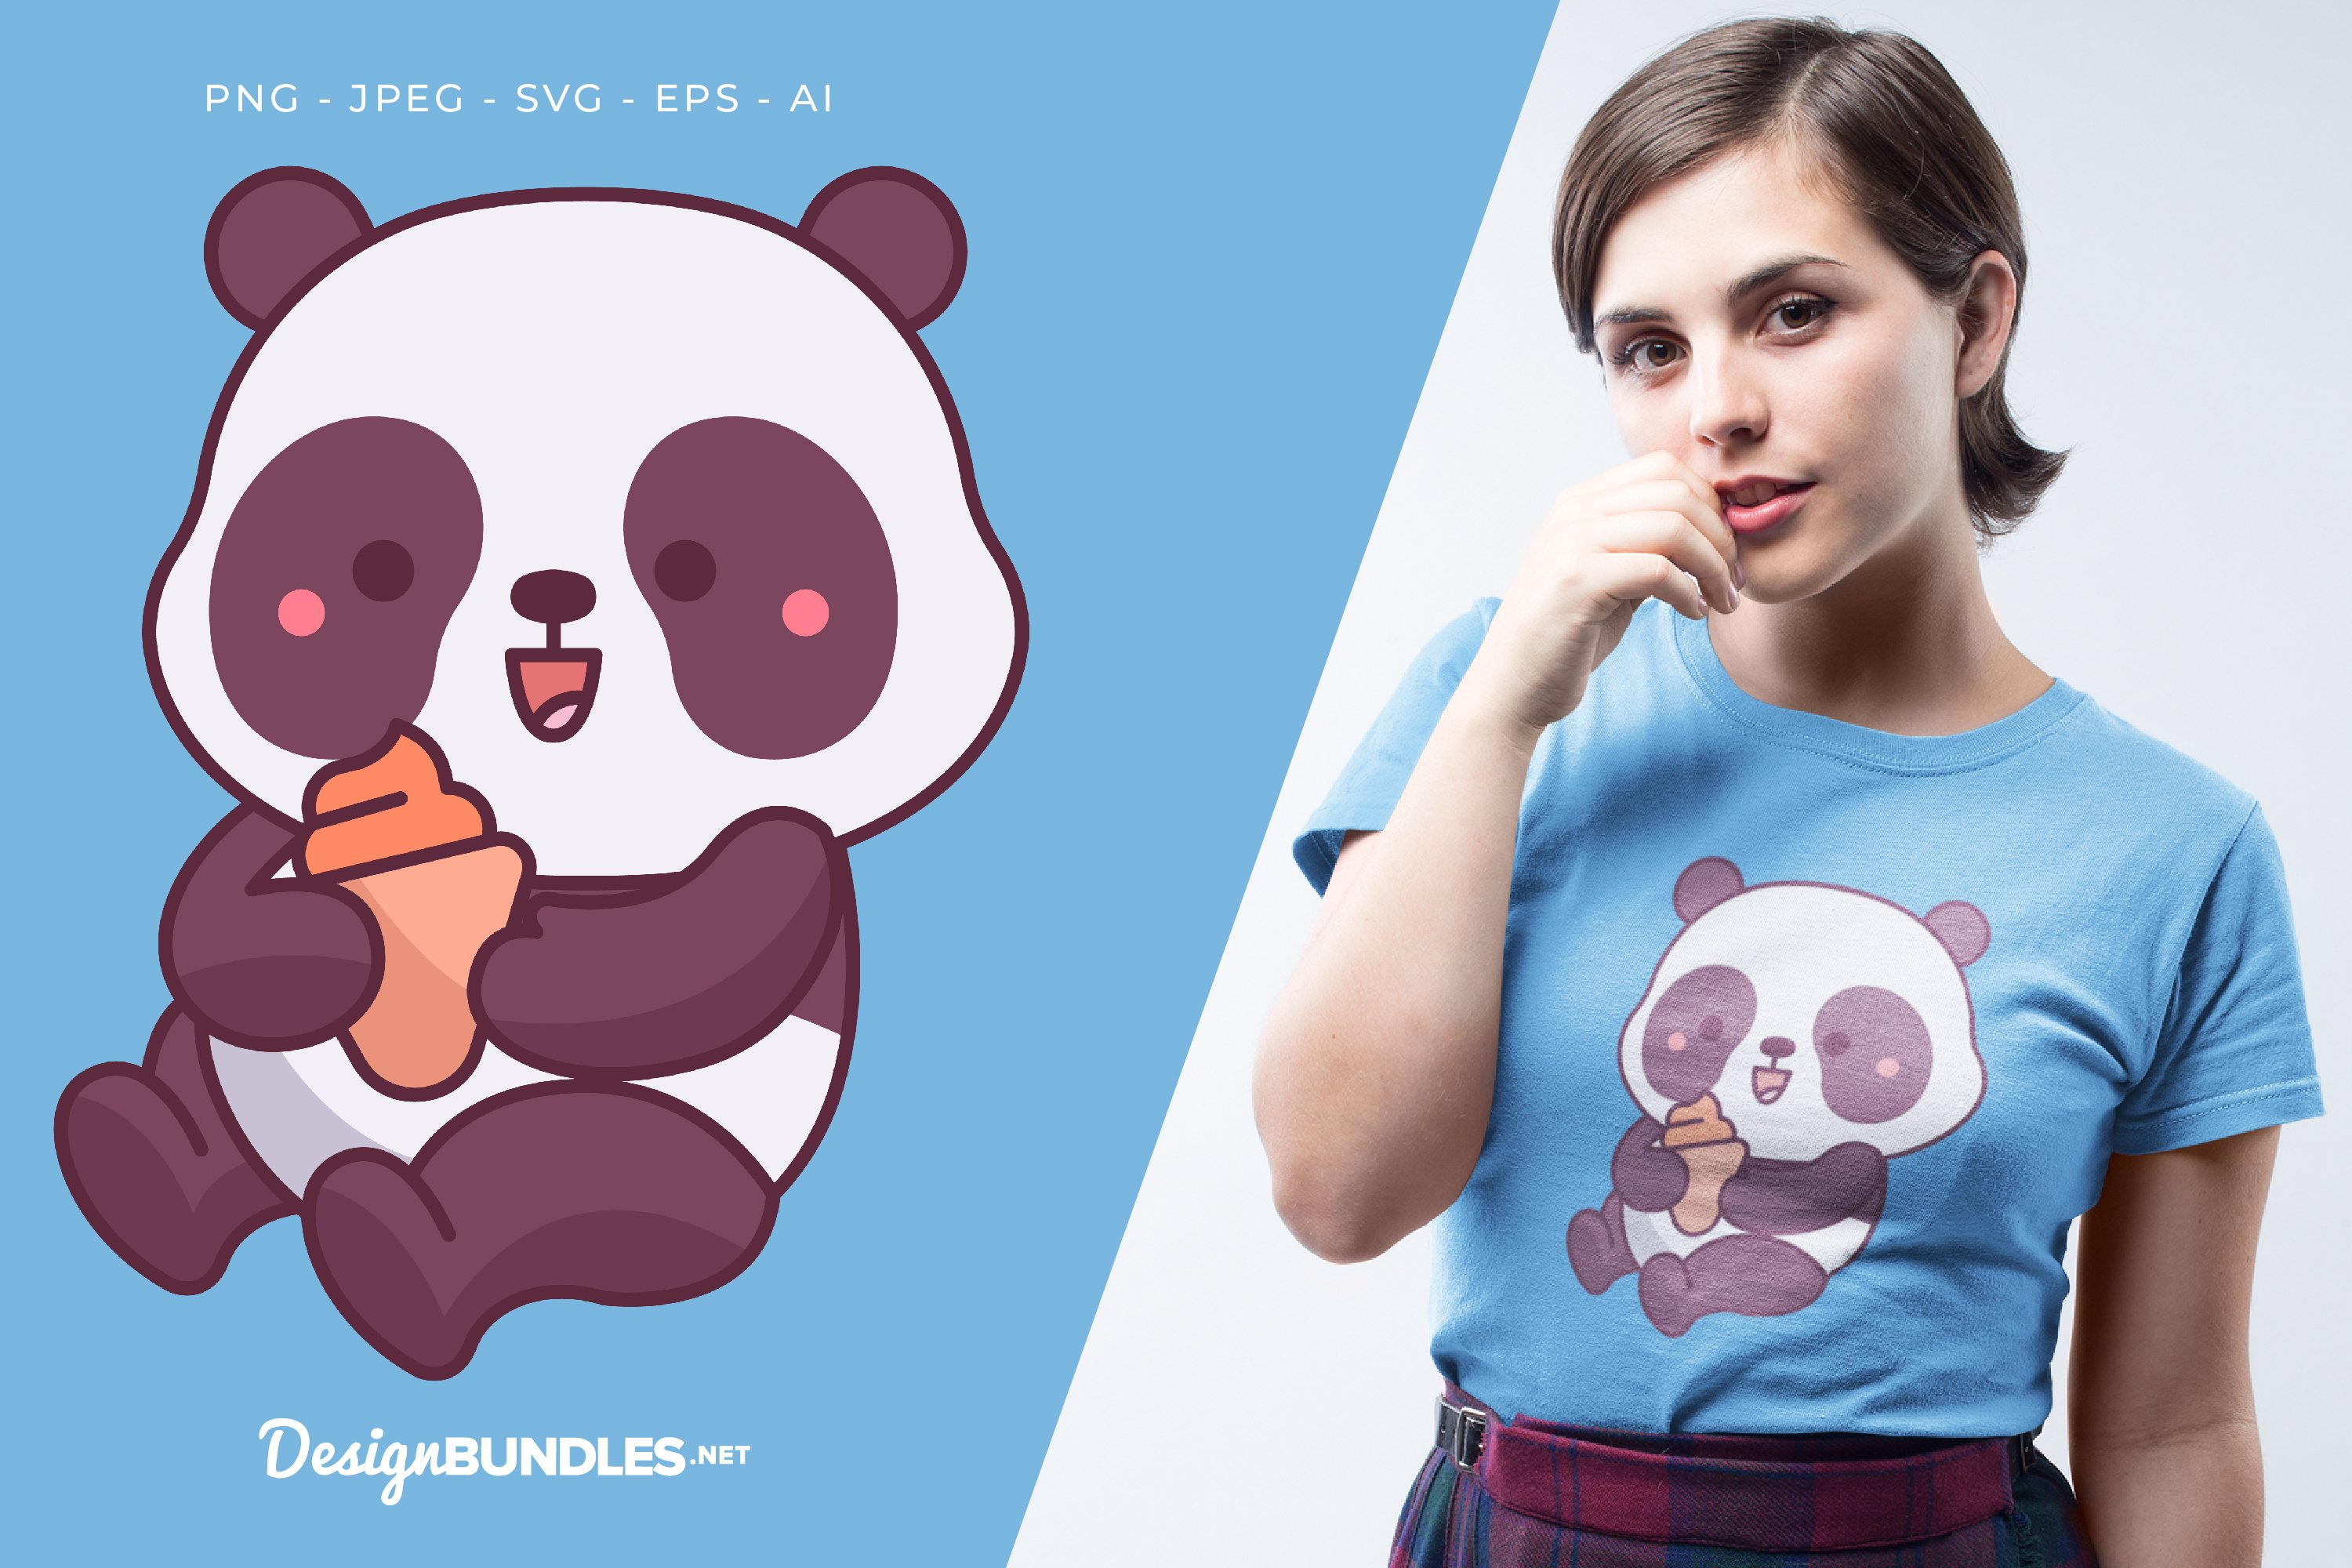 Panda Holds Ice Cream Vector Illustration For T-Shirt Design example image 1